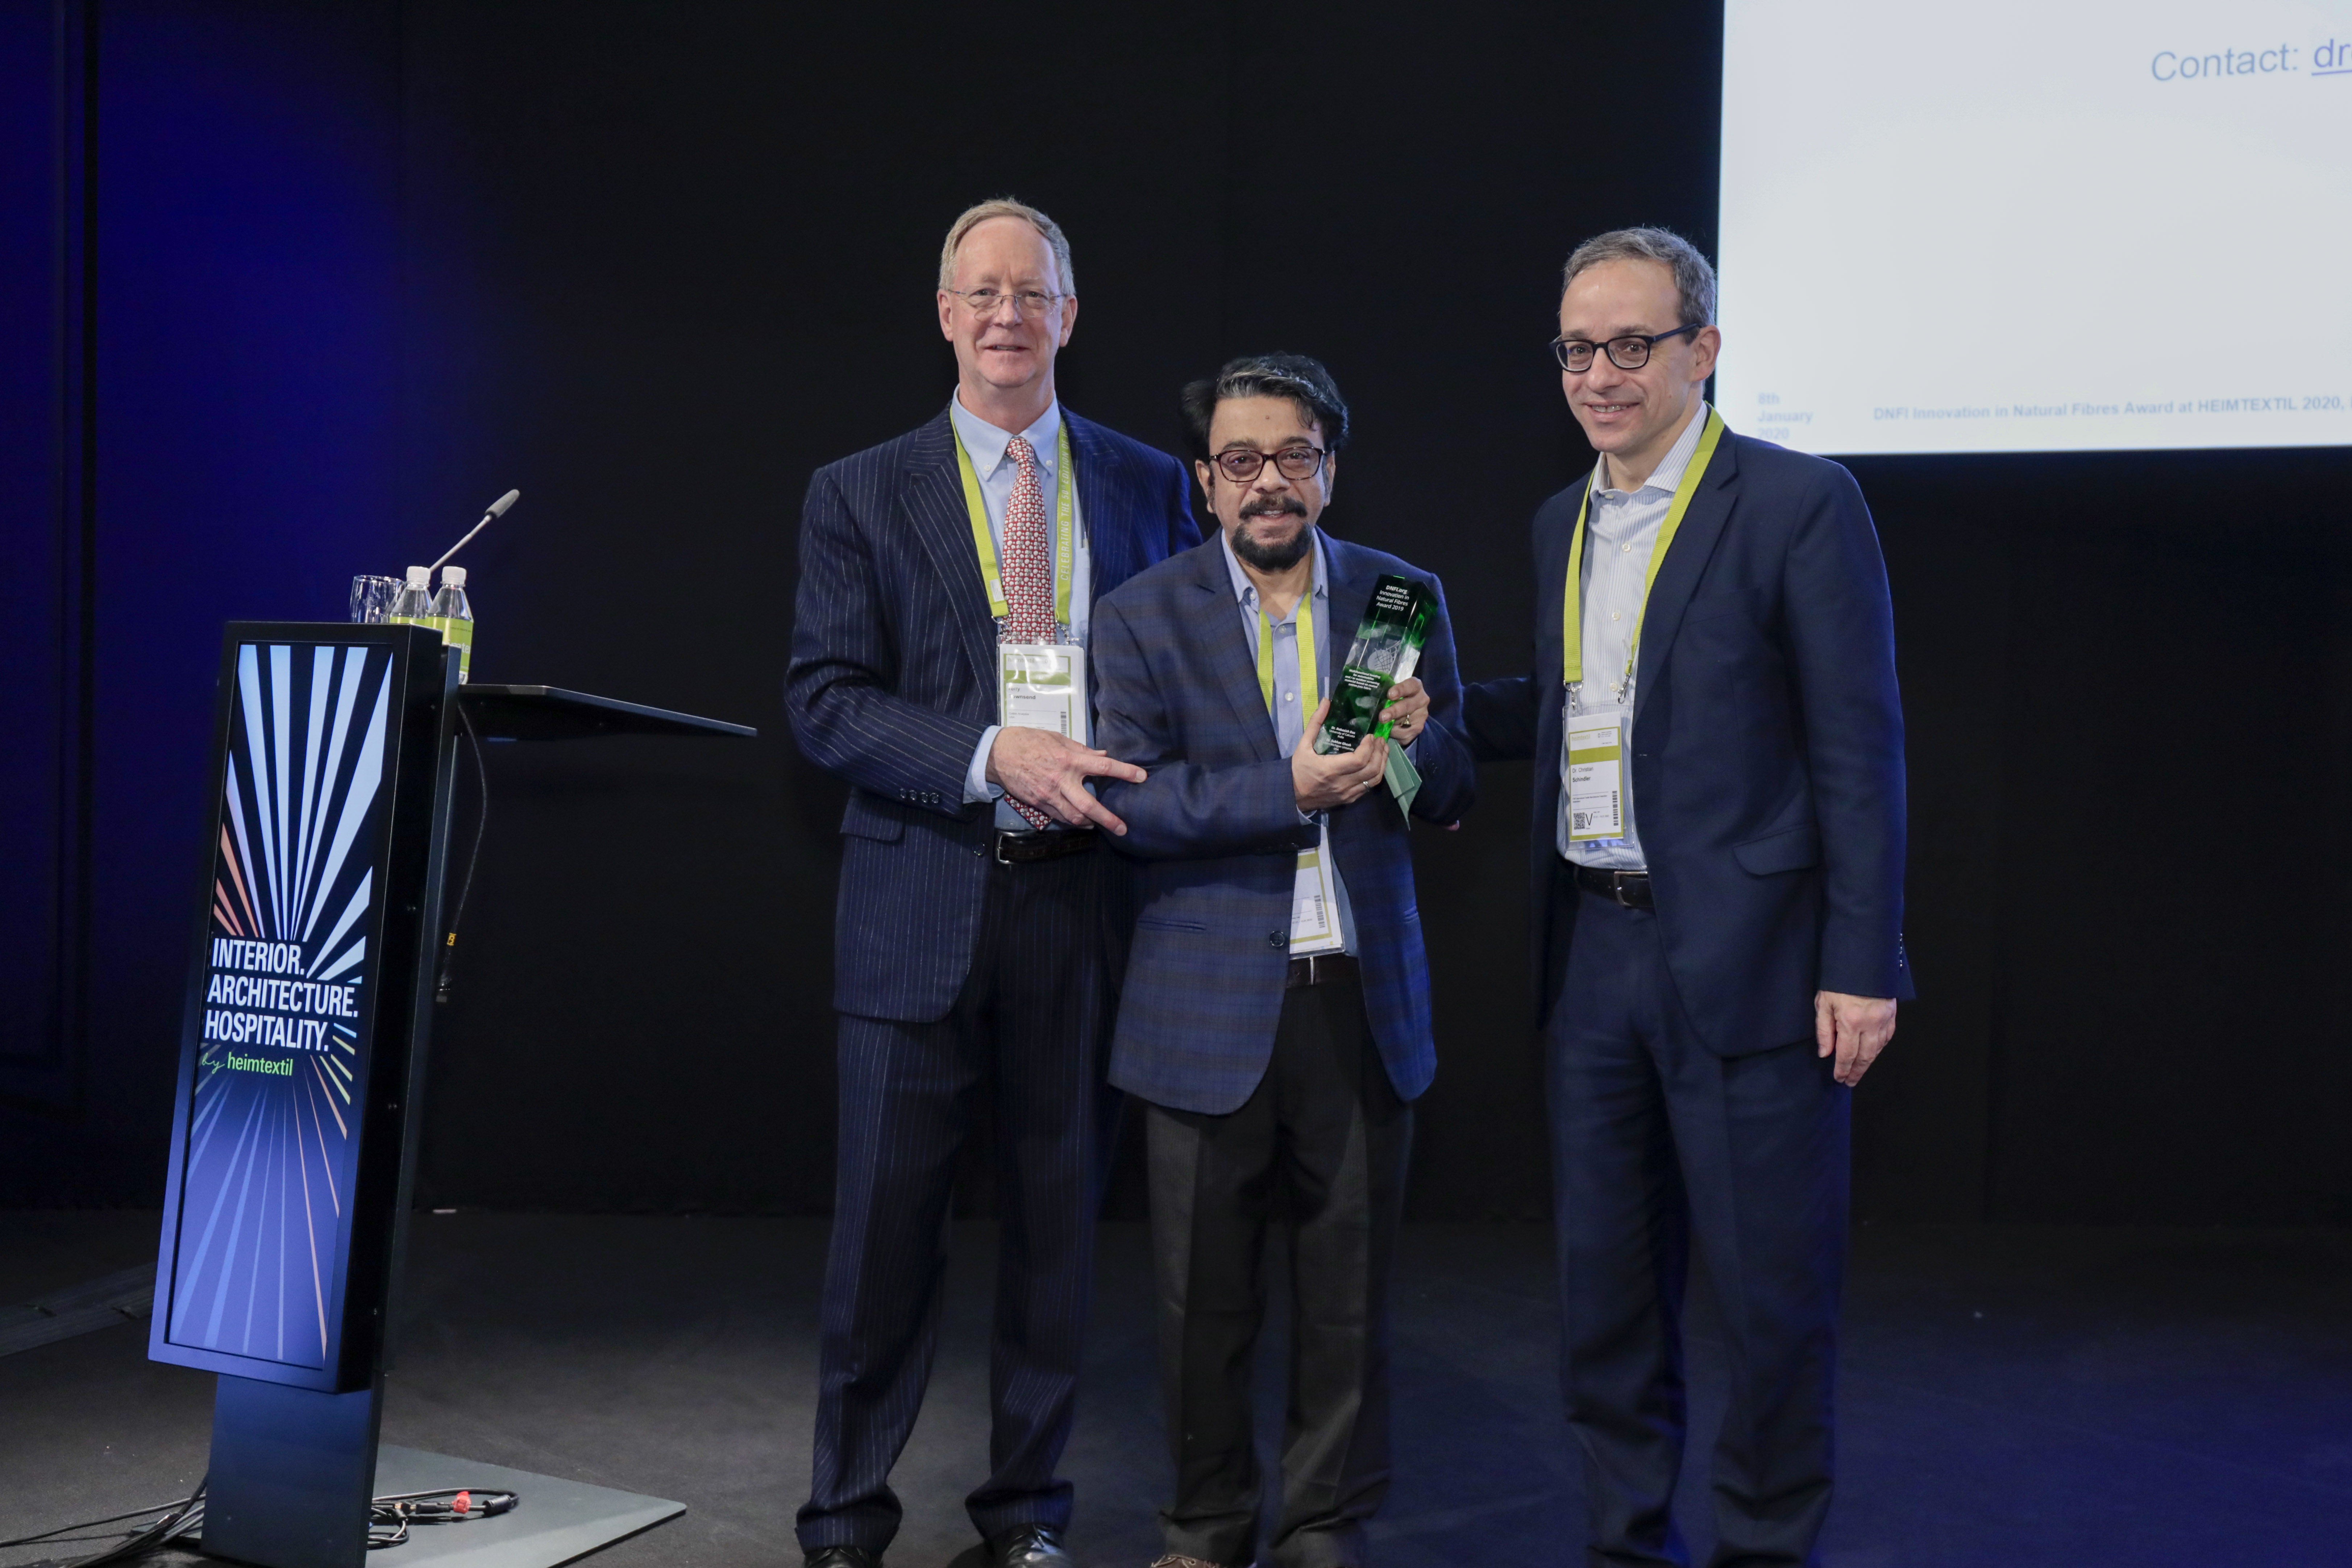 Award Ceremony: DNFI Innovation in Natural Fibres Award 2019 / Terry Townsend, Ph. Dr. Debasish Das, Dr. Christian Schindler